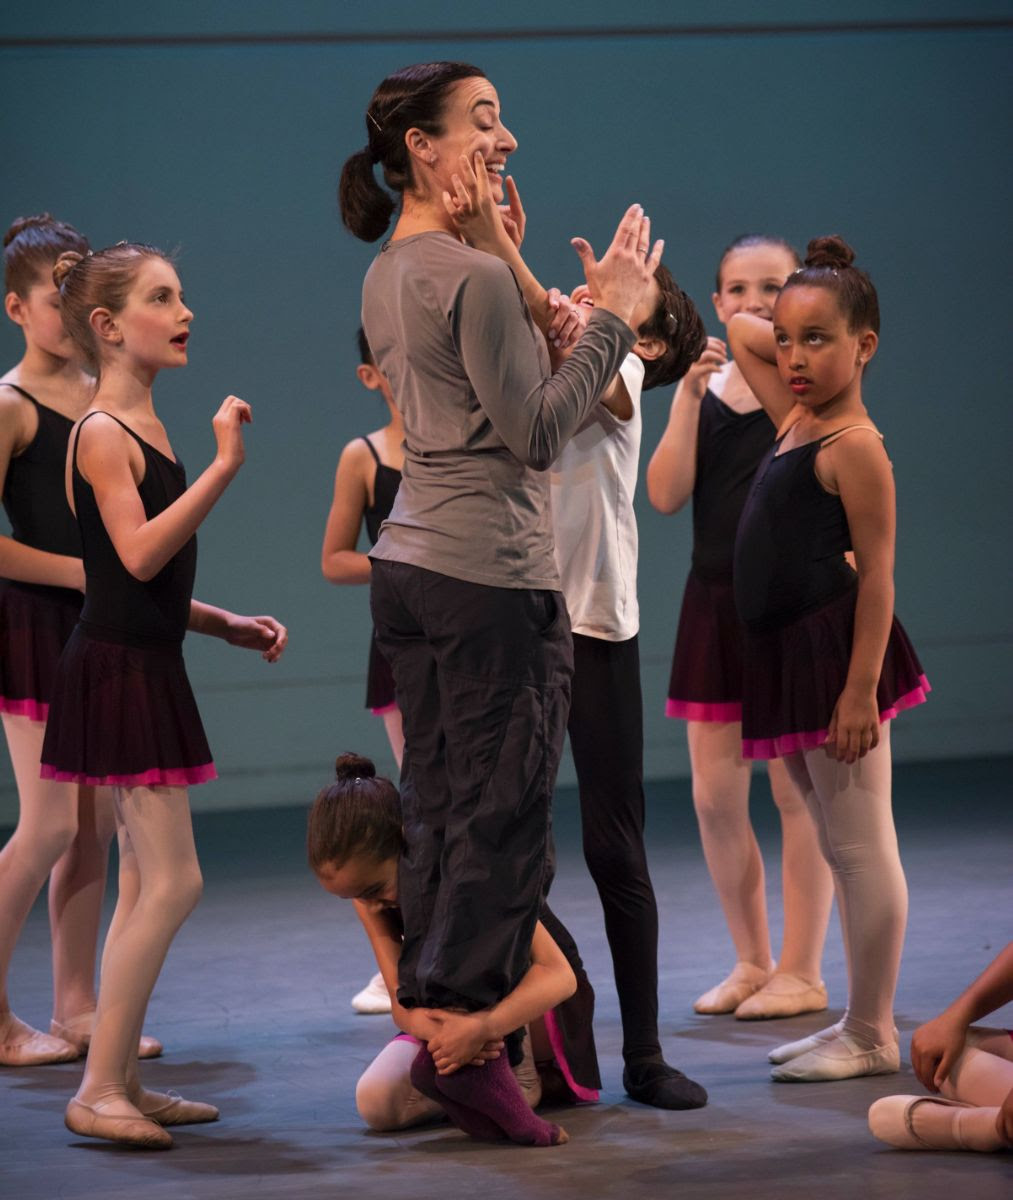 Liz Farotte Heenan  with BBT's Youth Division dancers, photo by Natalia Perez